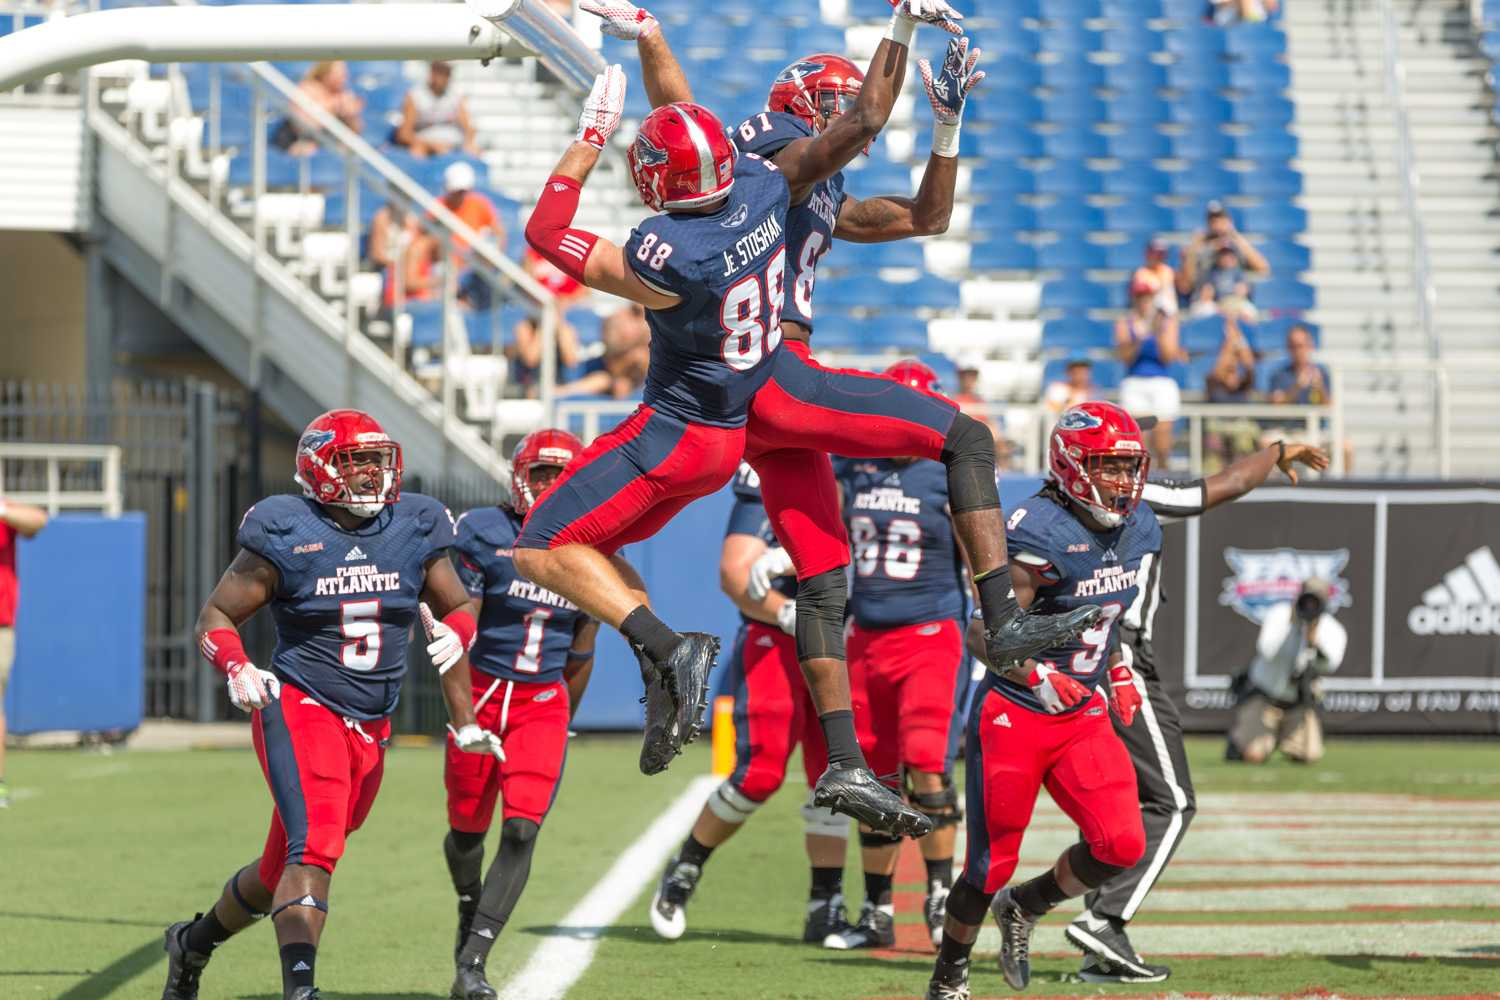 Senior wide receiver Jenson Stoshak (88) and sophomore receiver Kalib Woods (81) celebrate after FAU's first touchdown of the game against Rice on Saturday. Brandon Harrington | Photo Editor